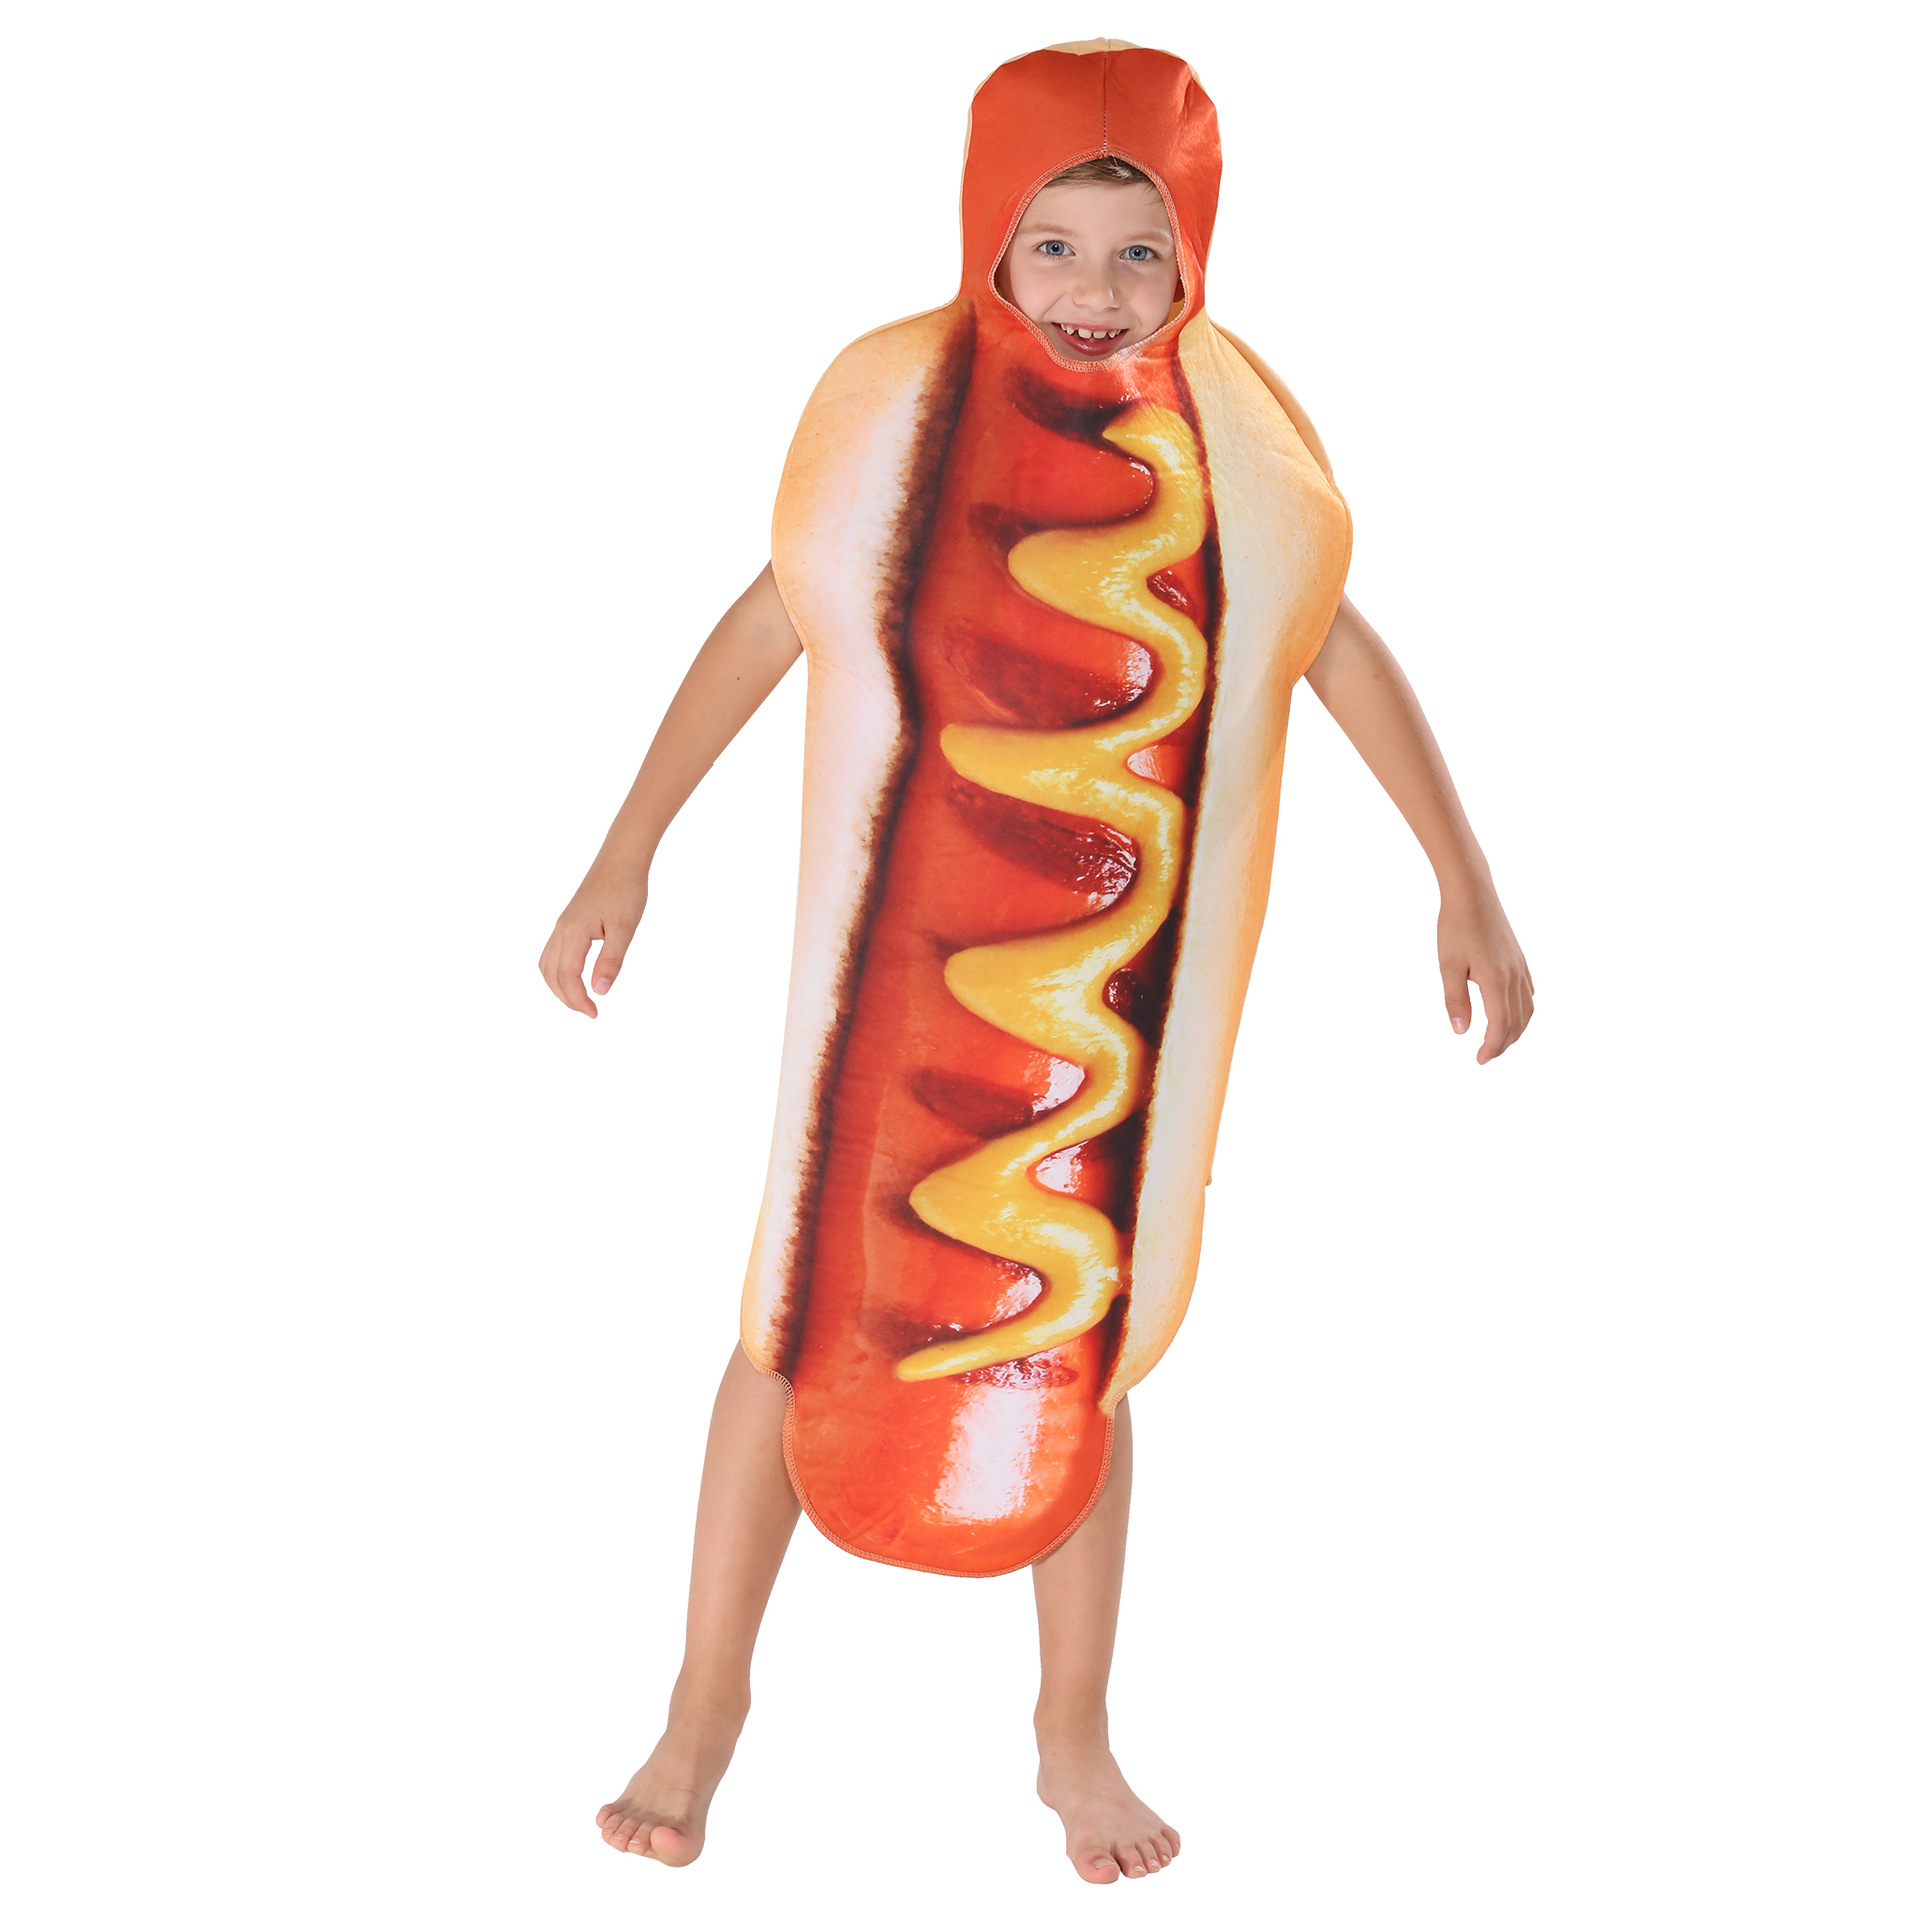 SATCOPY Halloween Costume For Boy Hot Dog Costume Funny Hotdog Food Cosplay Carnival Costume Adult Kid Party Cosplay Holiday Cos